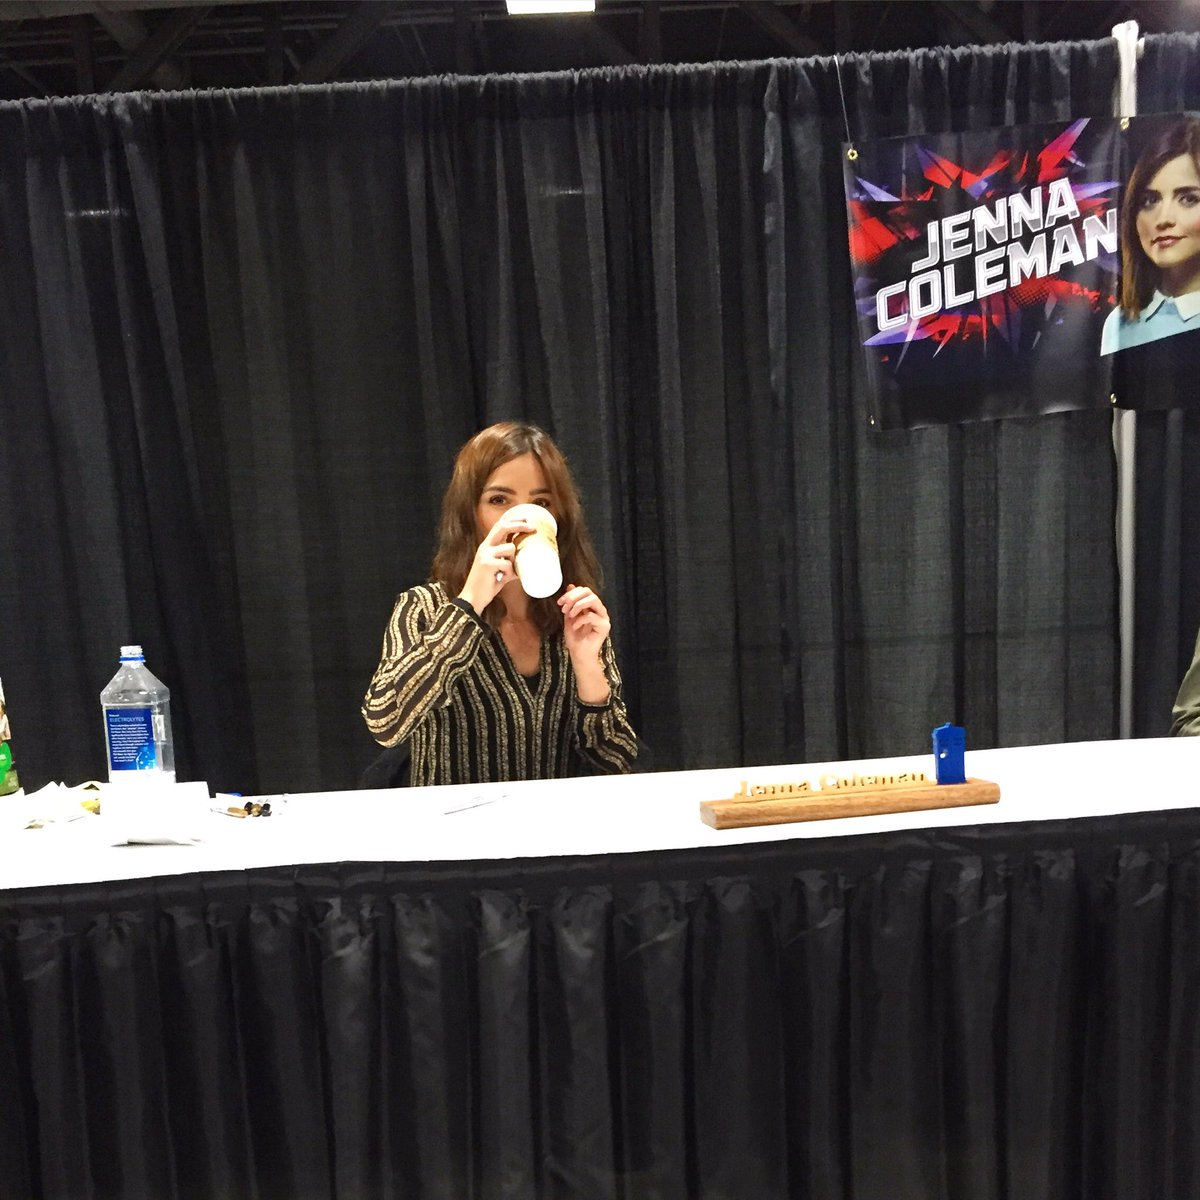 Jenna Coleman is the cutest!